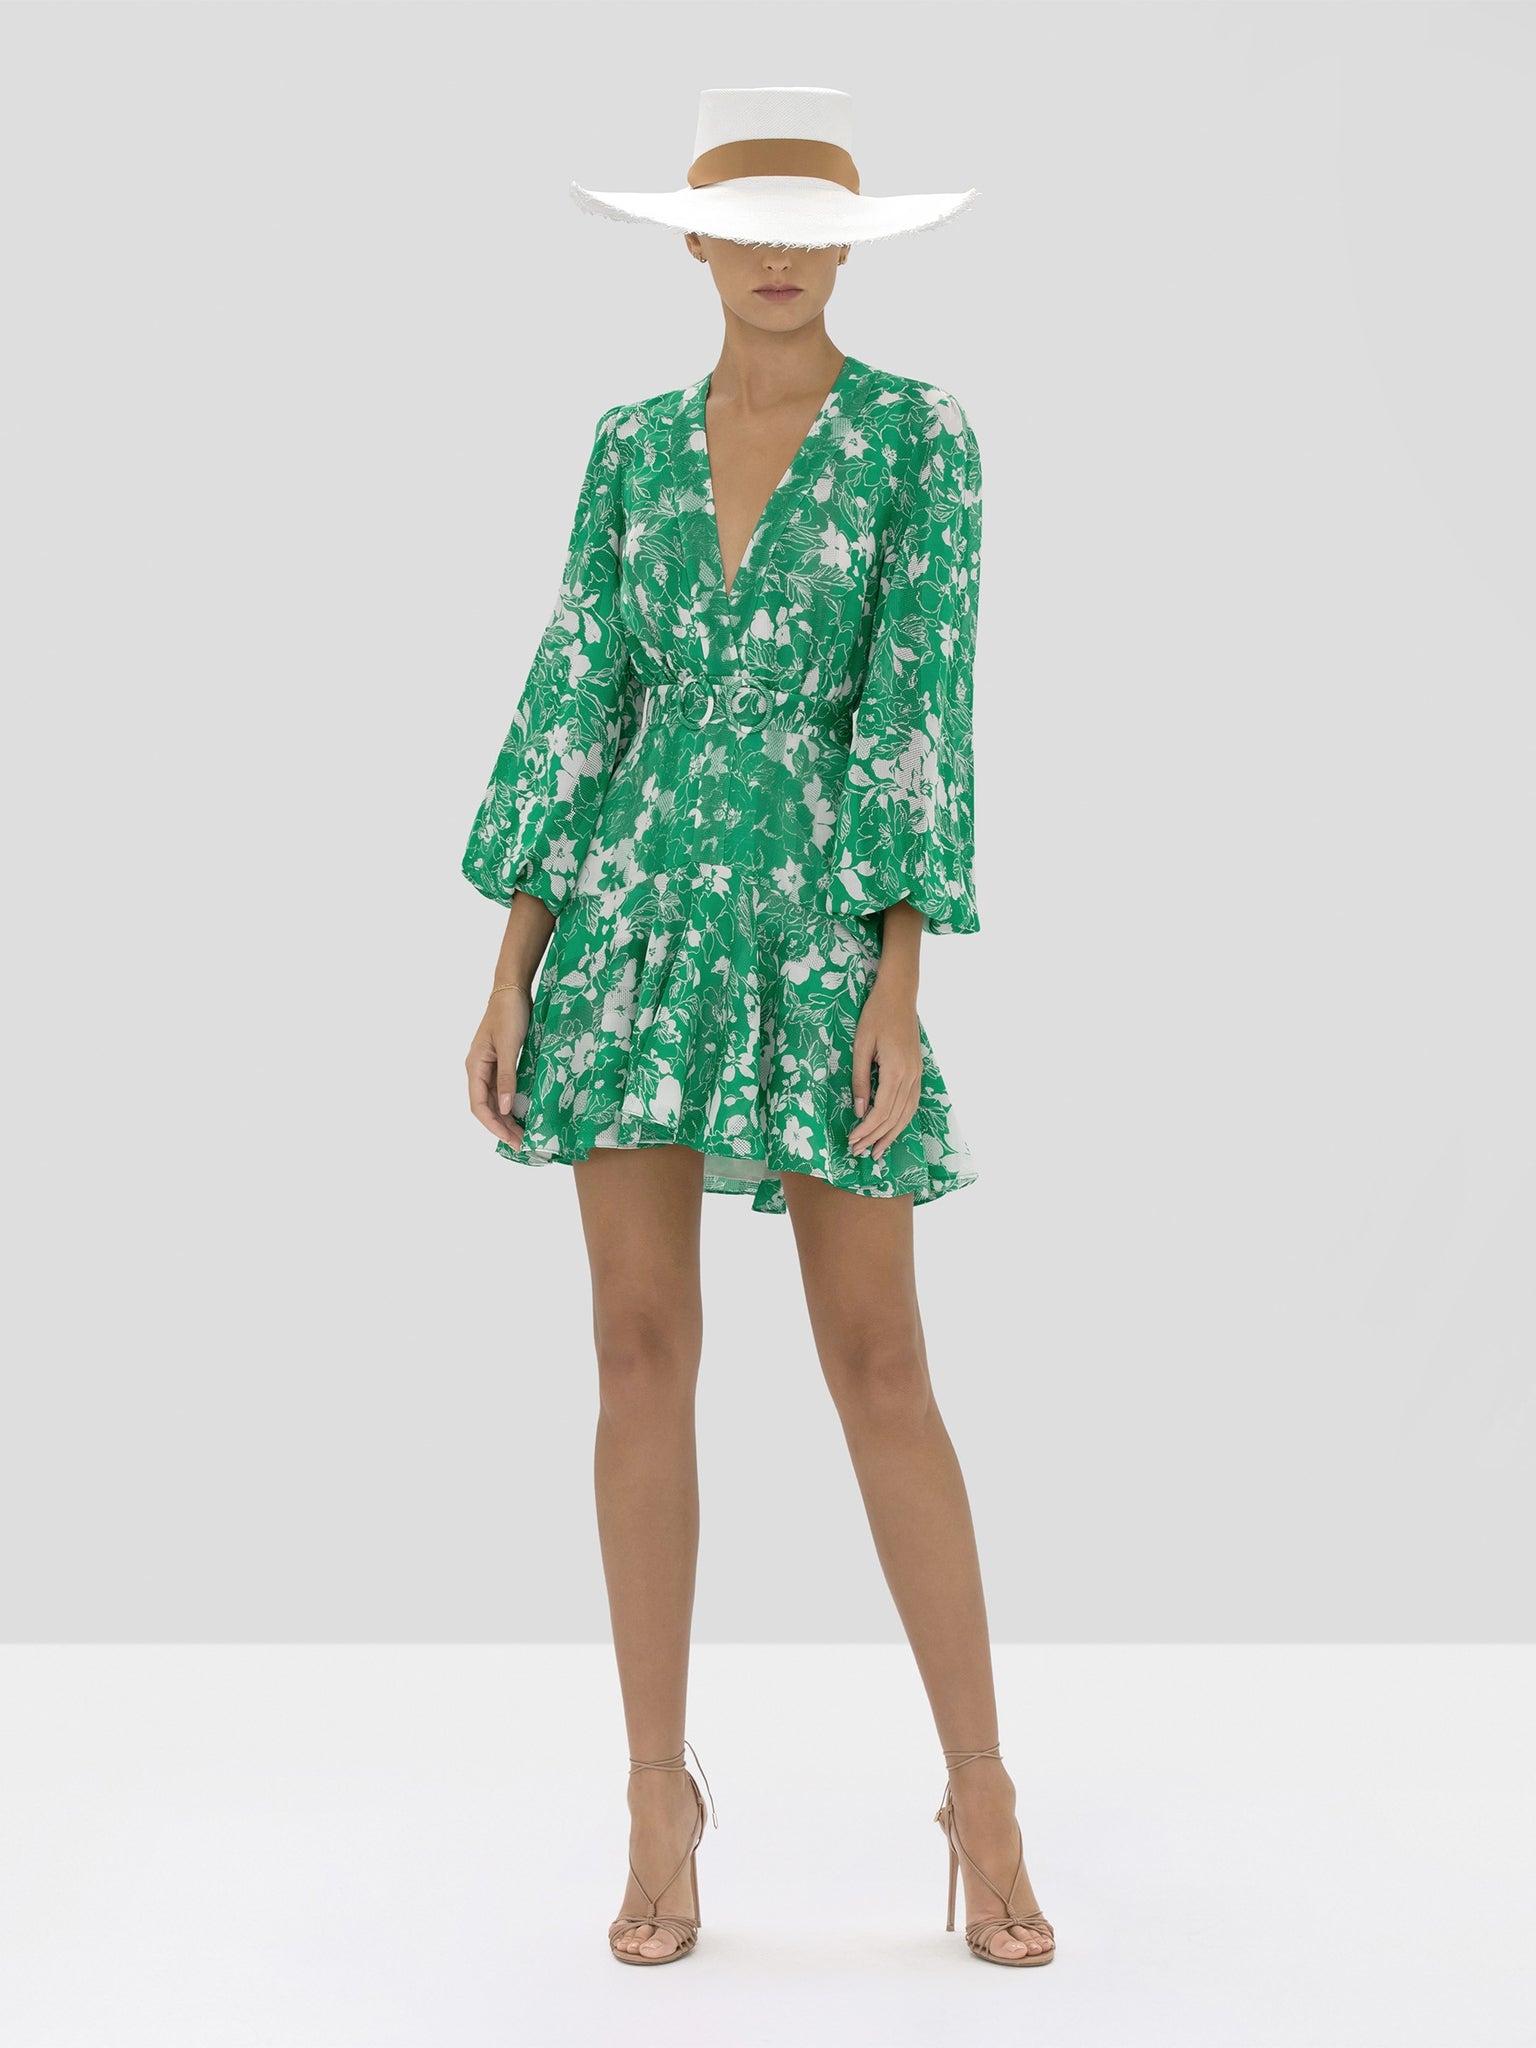 The Neala Dress in Emerald Floral from the Spring Summer 2020 Ready To Wear Collection.